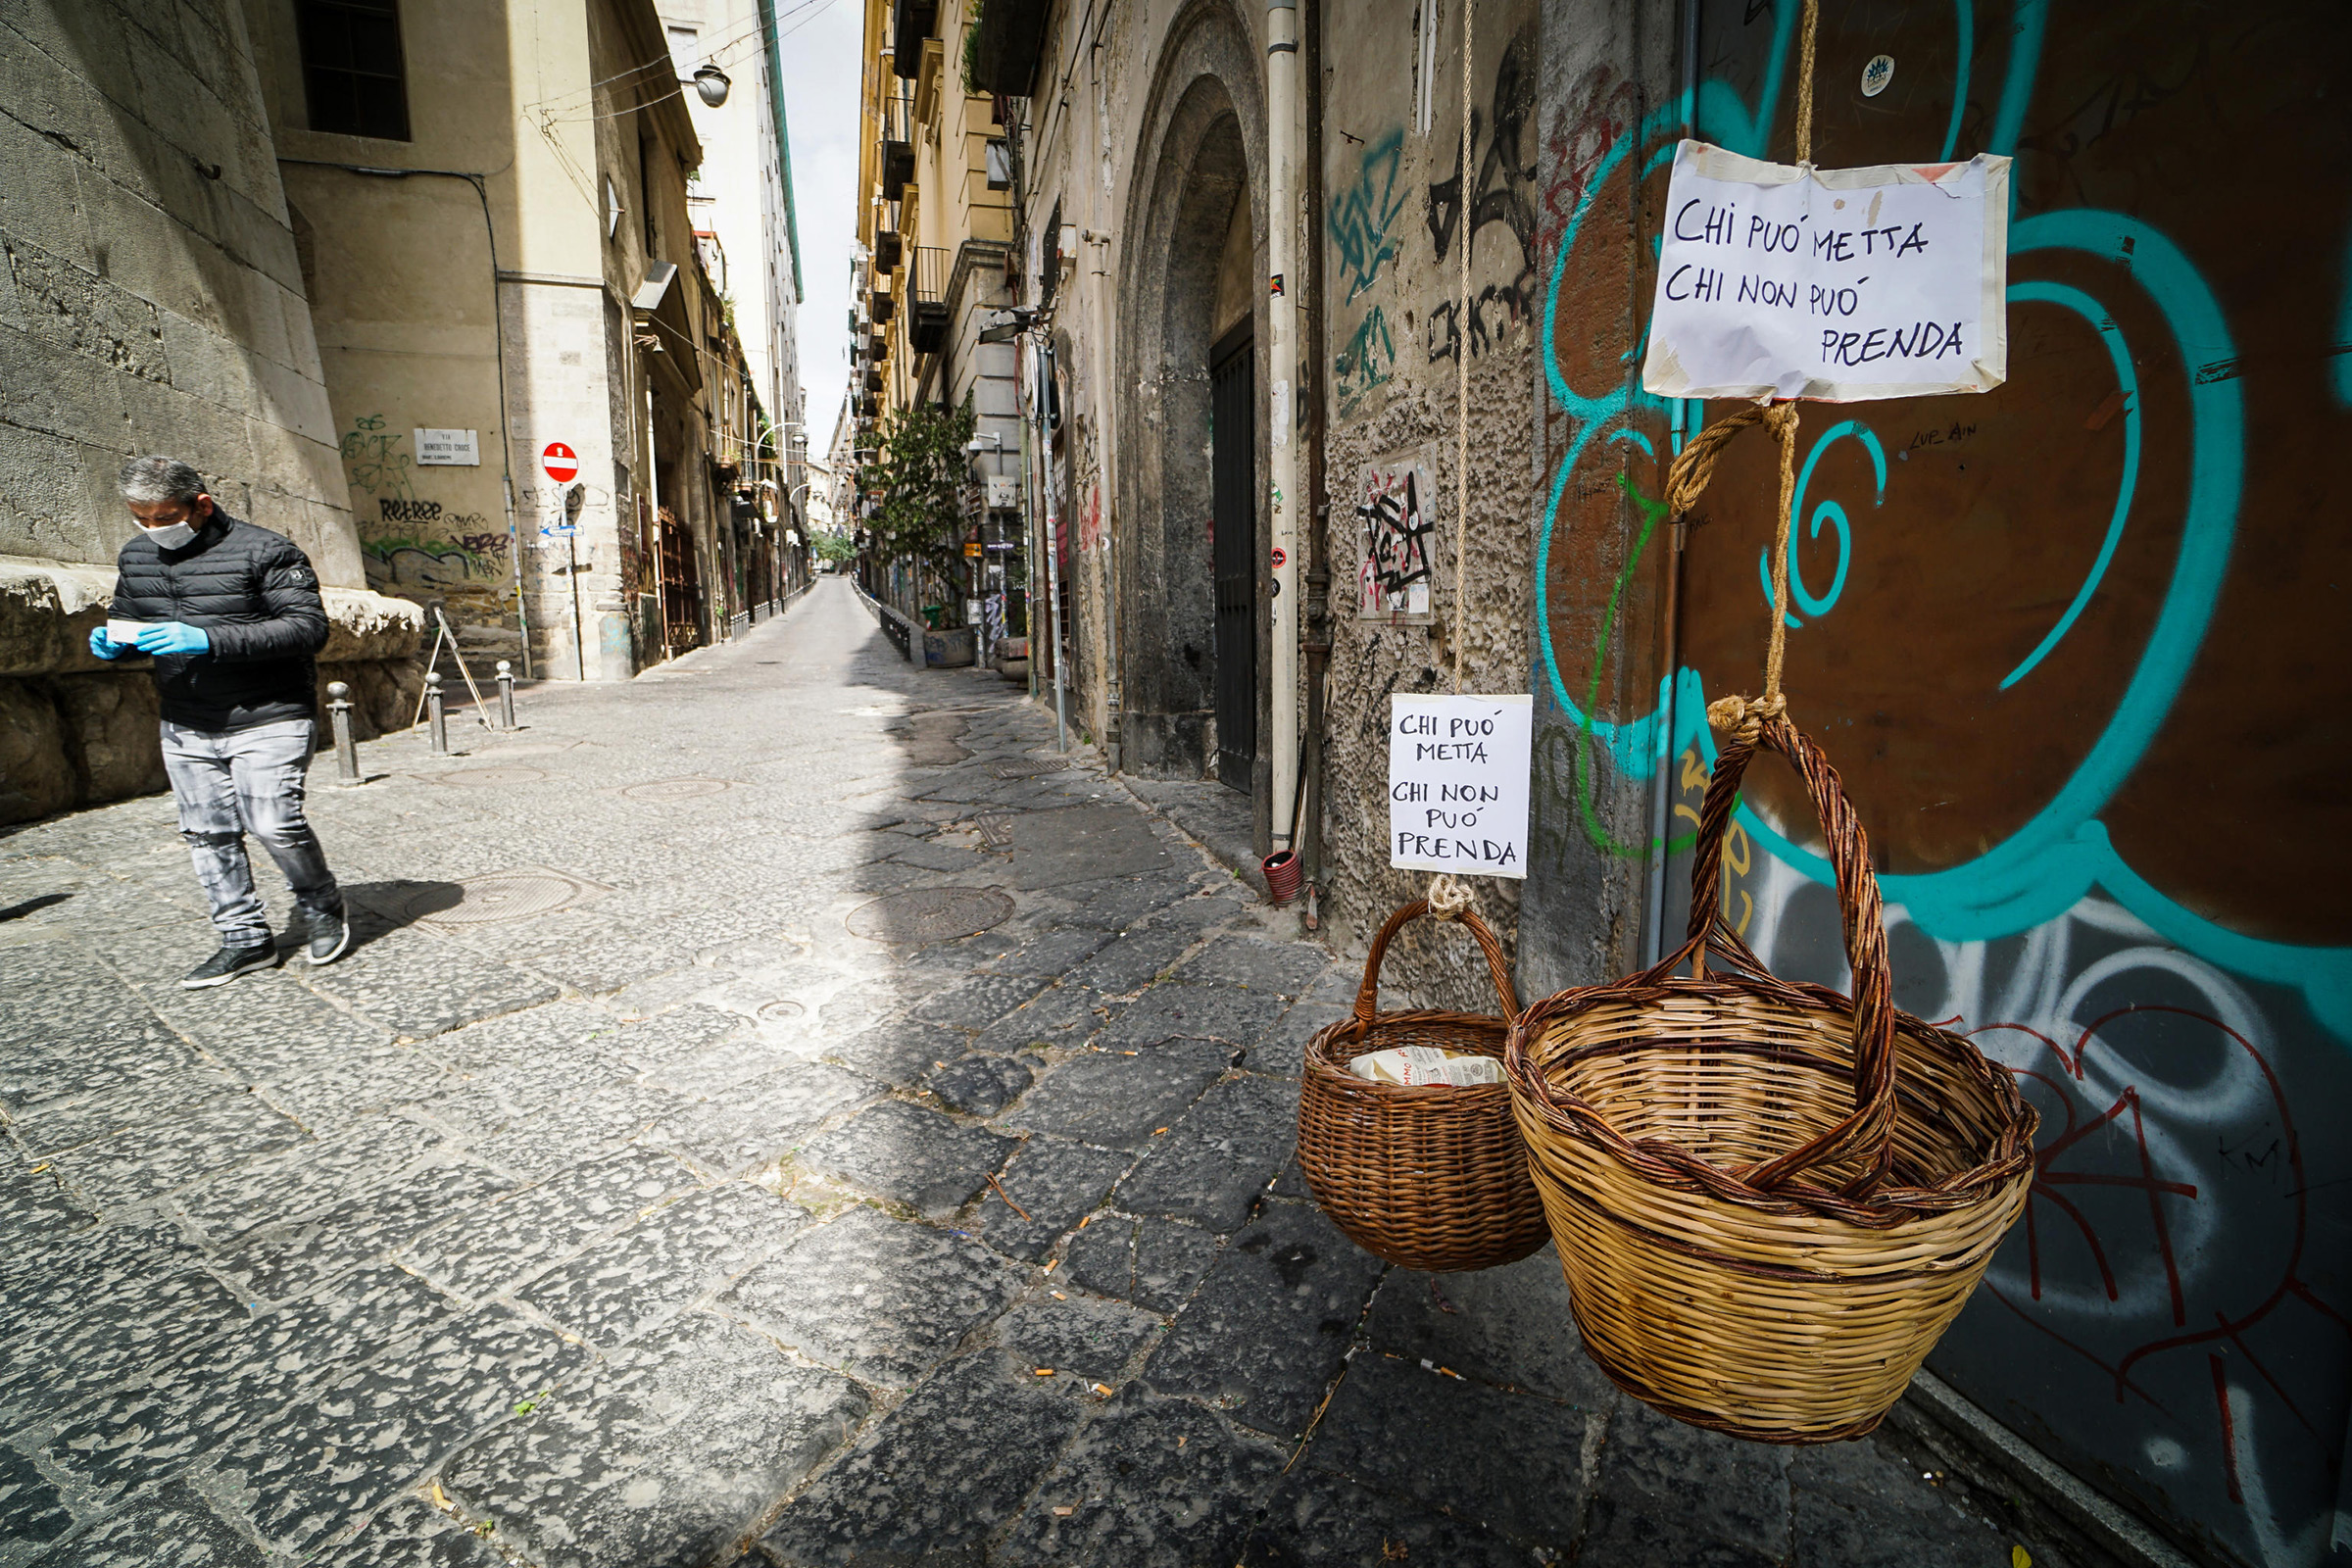 Solidarity baskets with notes reading 'Who can may put, who cannot may take' in one of the deserted streets in the historic center of Naples, southern Italy, on March 30, 2020.